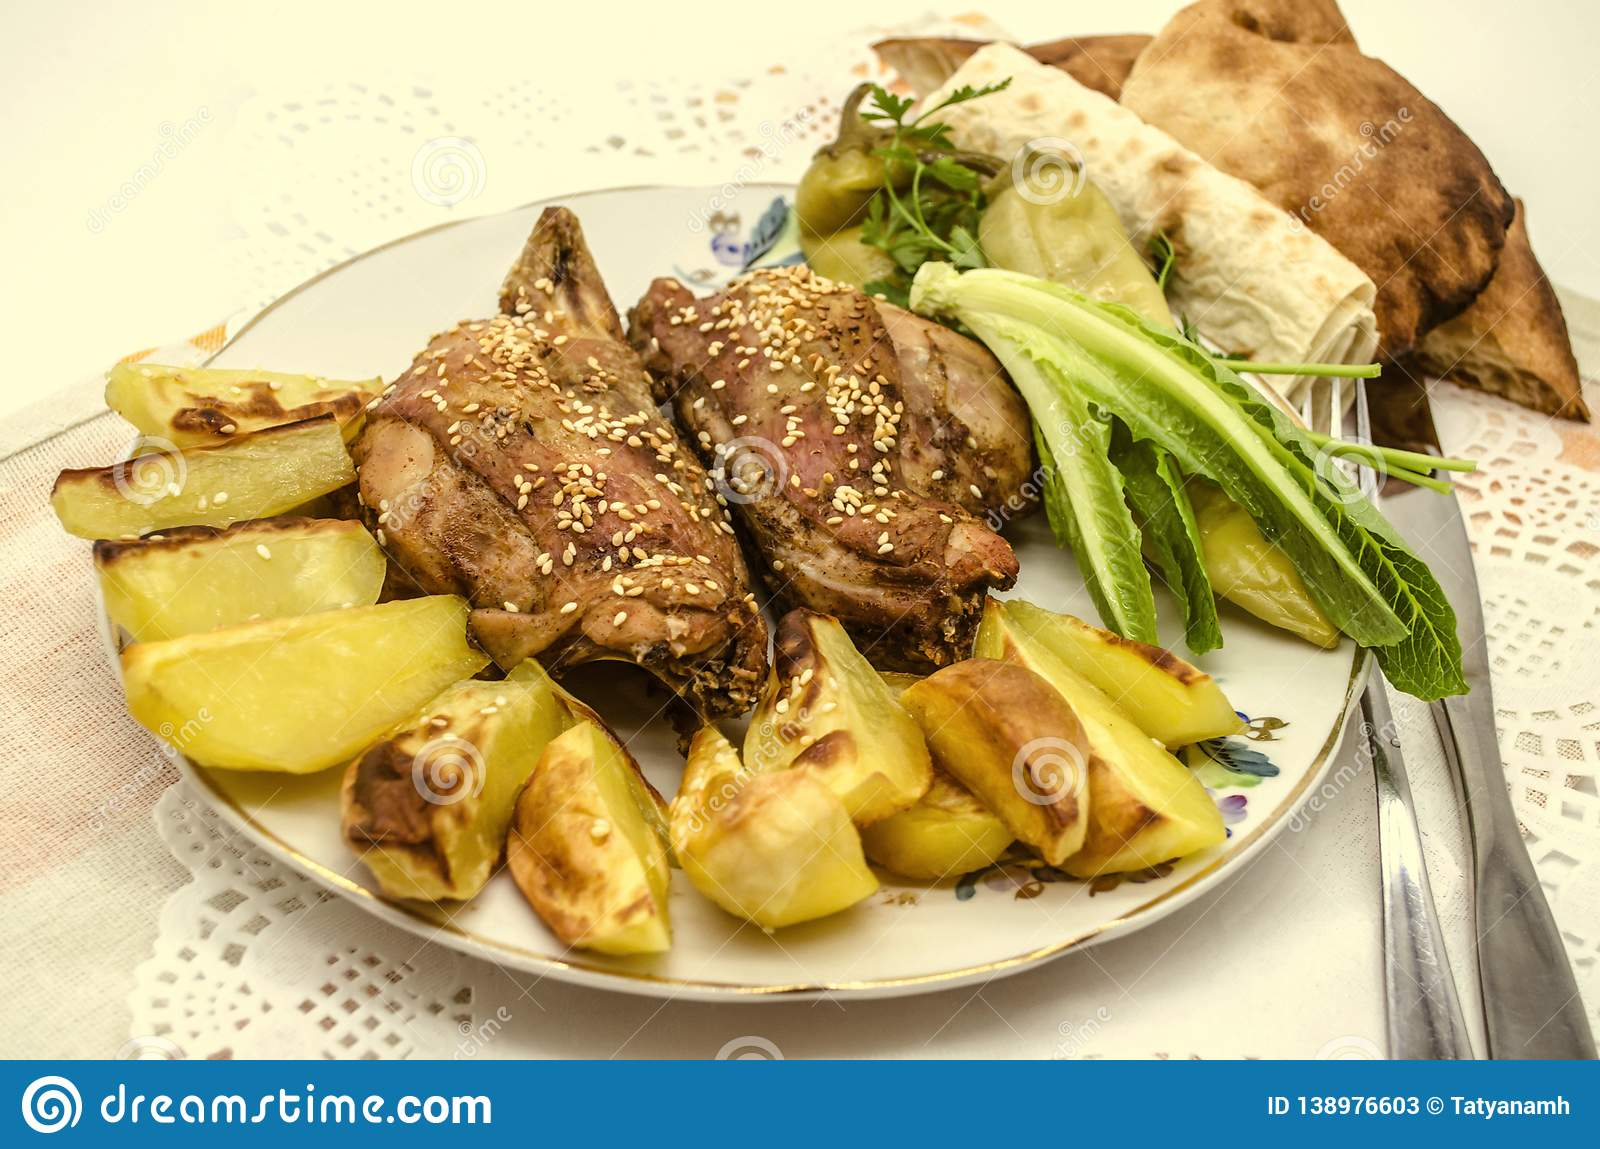 Porcelain plate with fried pieces of chicken and potatoes, sprinkled with white sesame and black pepper, next to the salad and pe. A large plate with fried stock photos